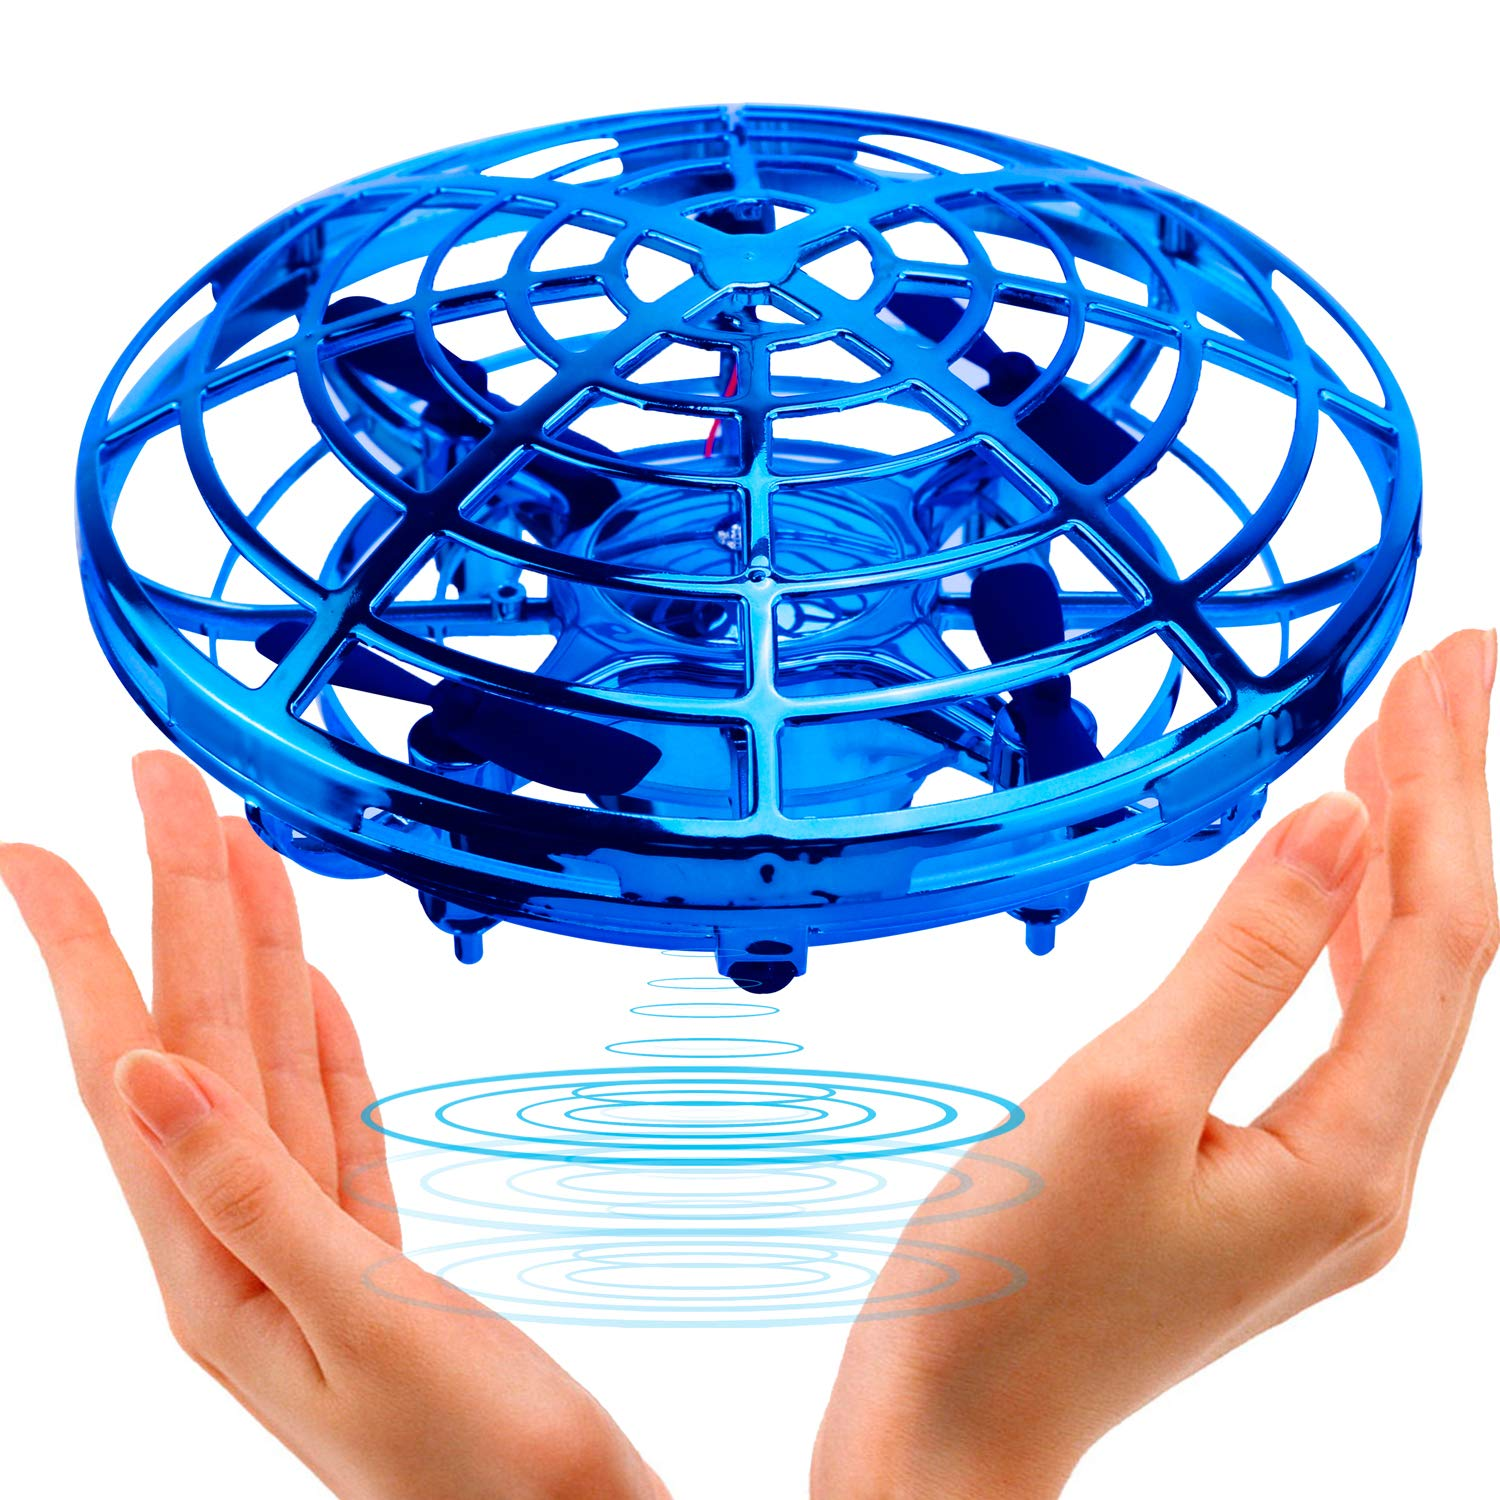 UFO Flying Ball Toys,TURN RAISE Motion Hand-Controlled Suspension Helicopter ToyInfrared Induction Interactive Drone Indoor Flyer Toyswith 360°Rotating and Flashing LED Lightsfor Kids, Boys ,Girls by TURN RAISE